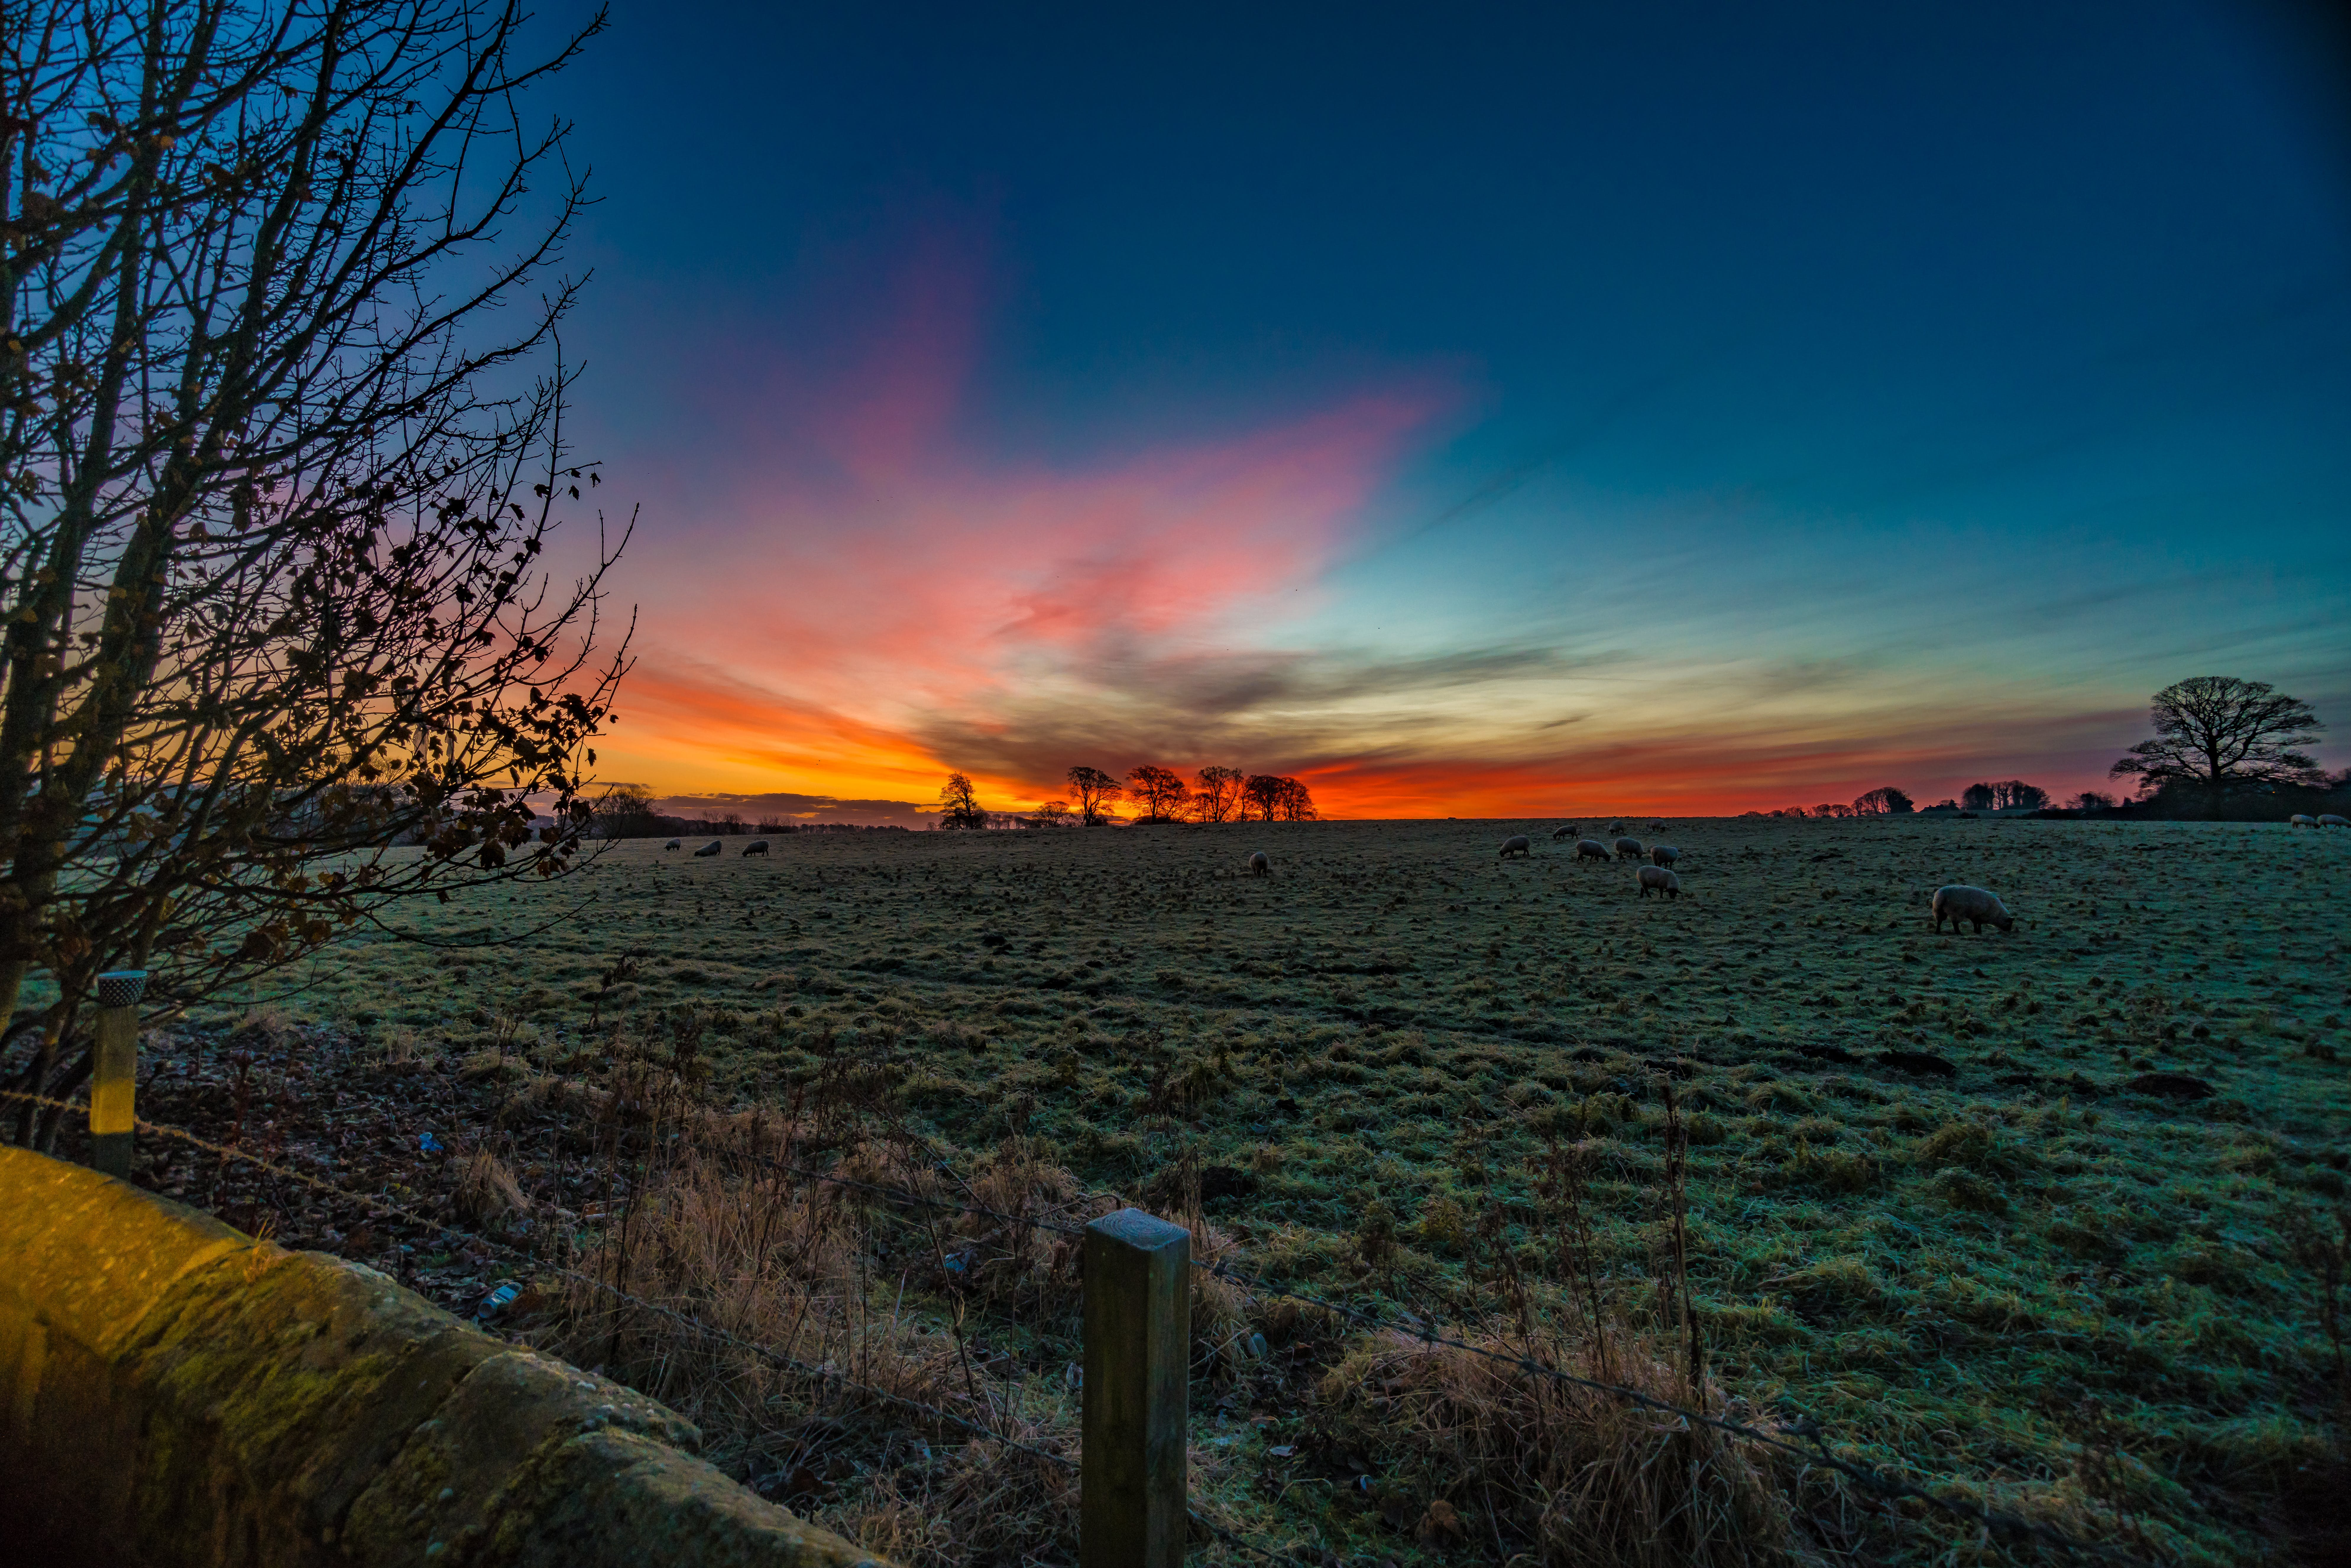 Photography of Sunset over Green Grass Field